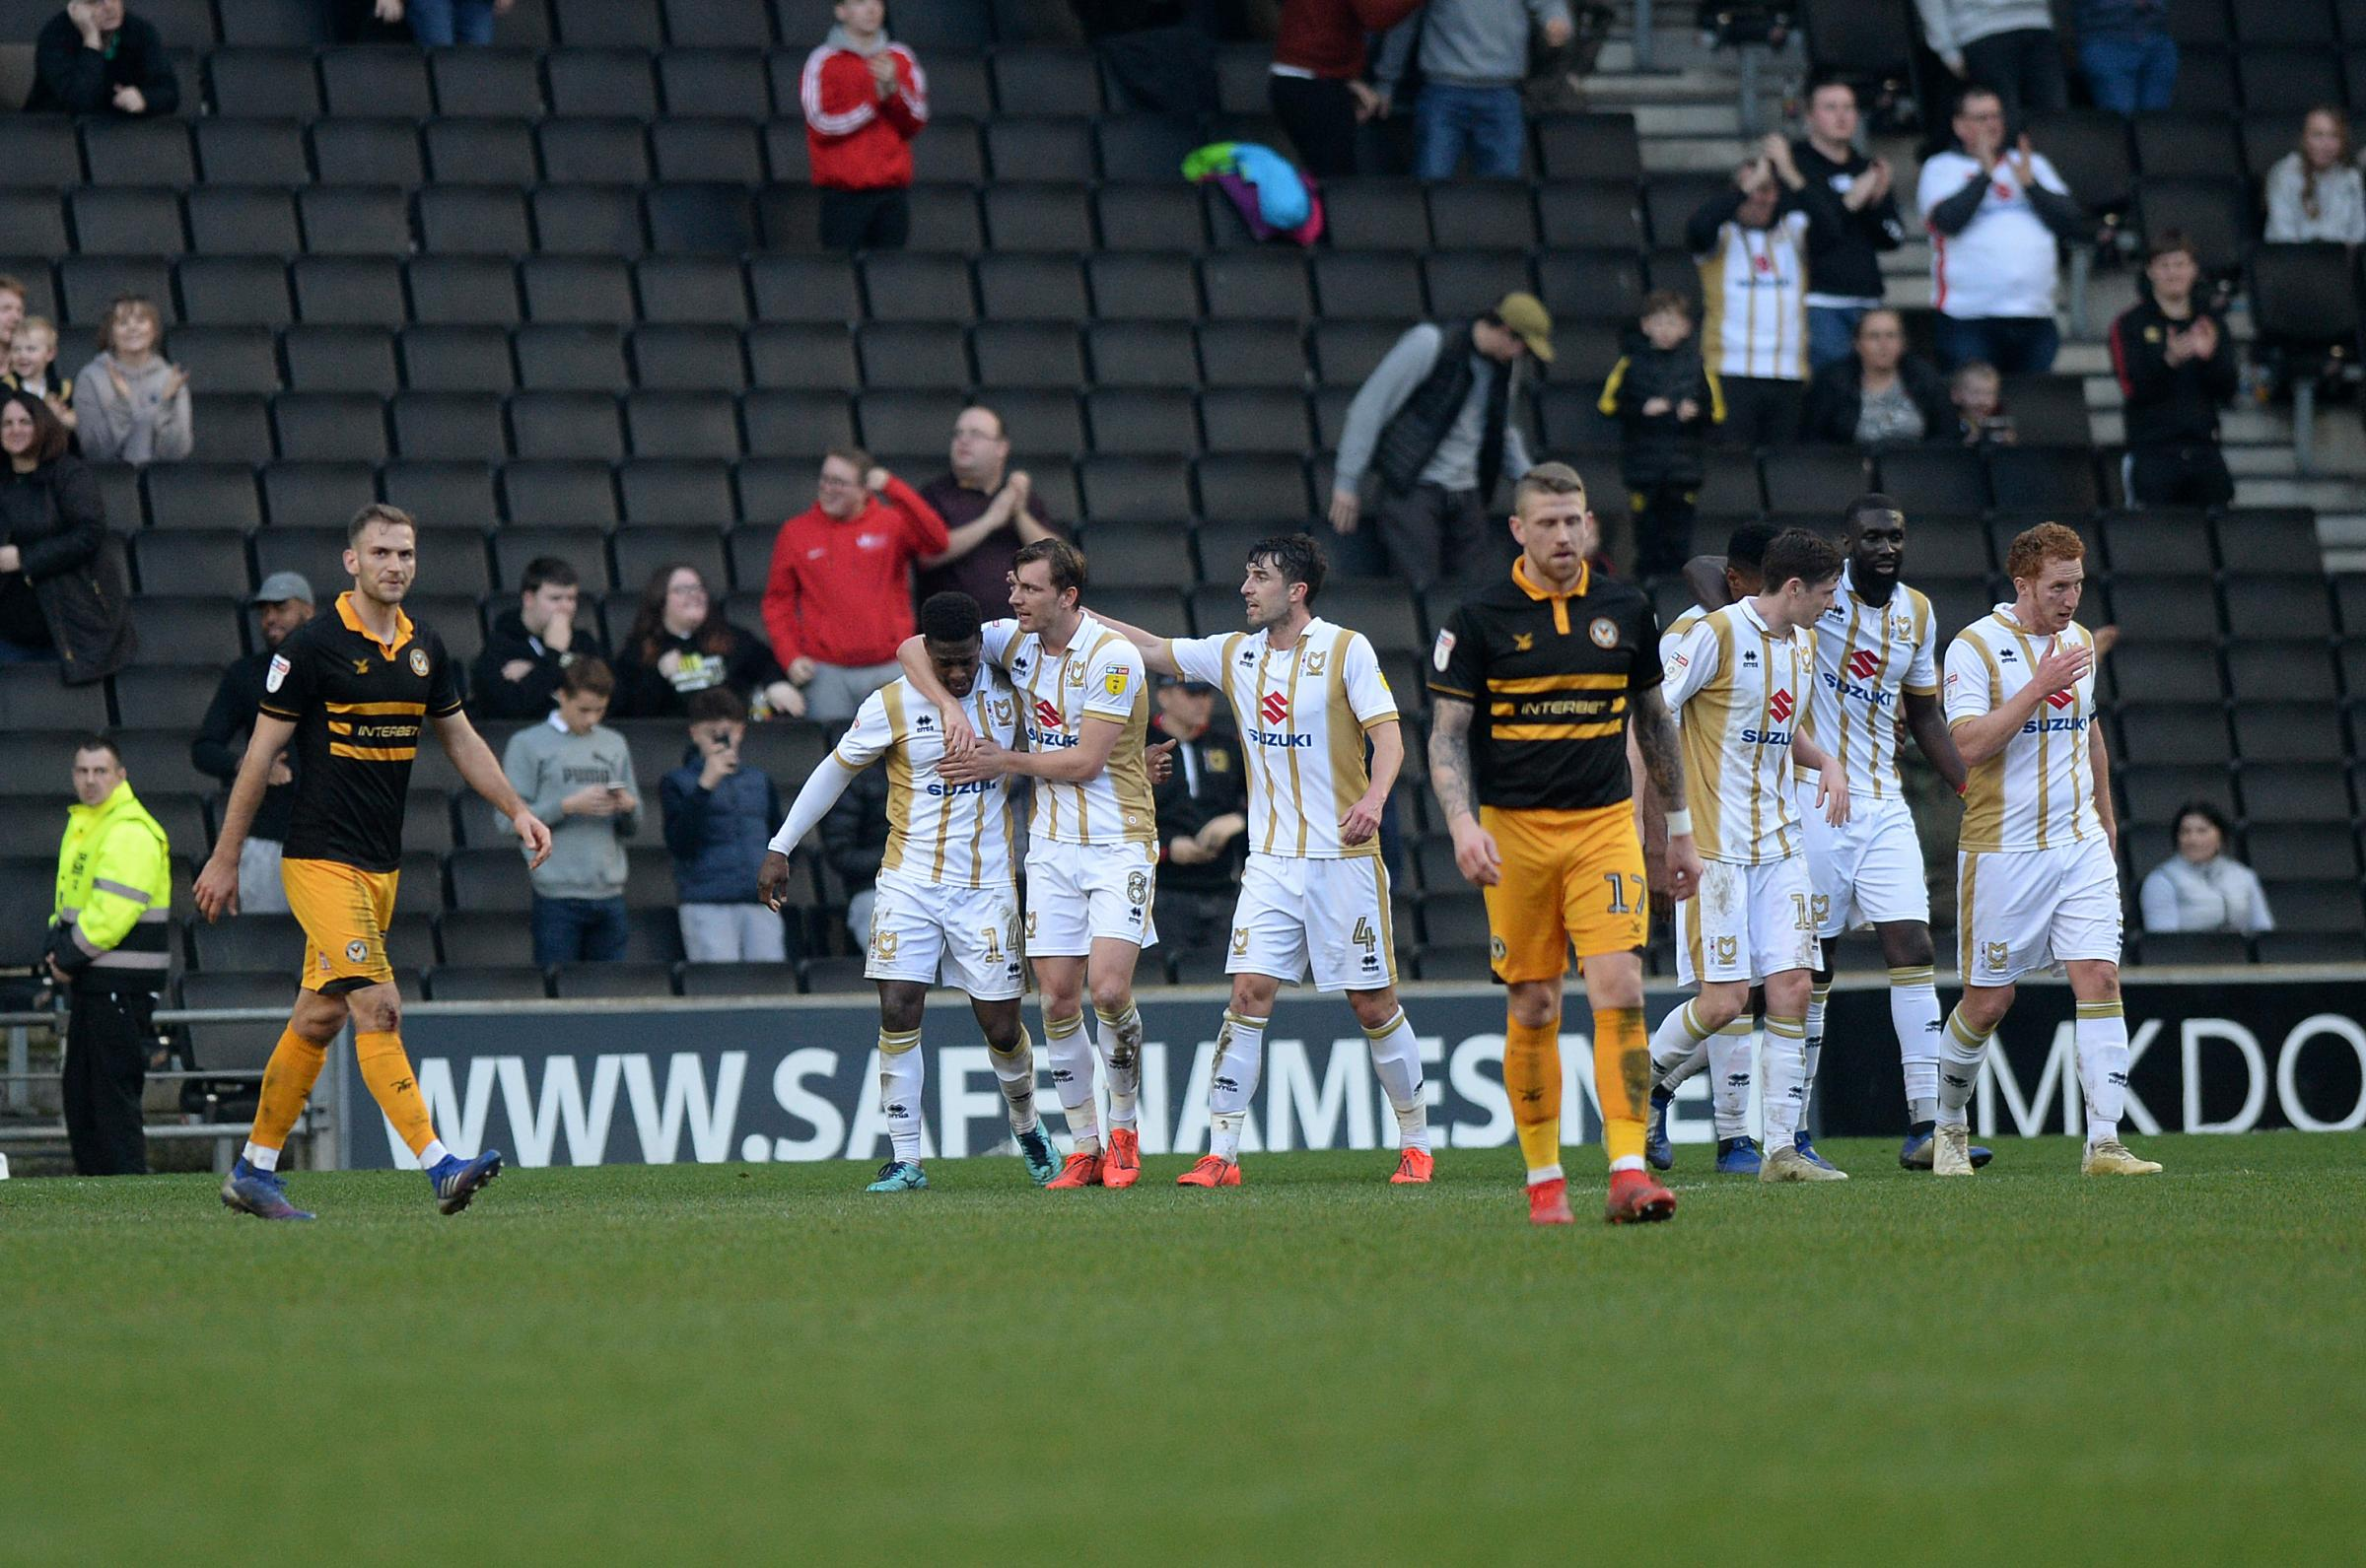 DEFEAT: Newport County were beaten 2-0 at MK Dons on Saturday. Pictures: Huw Evans Agency